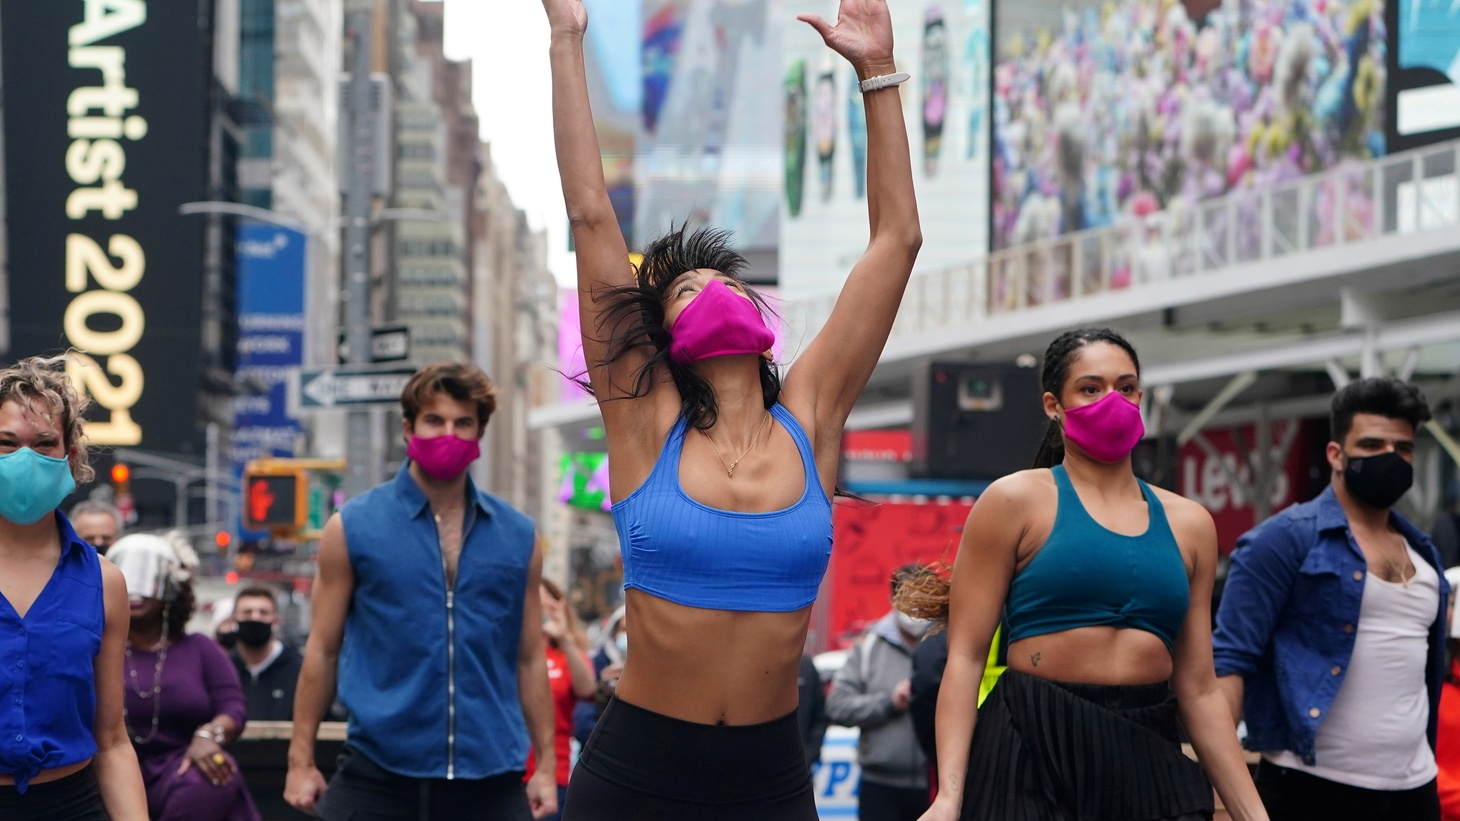 Performers take part in a pop-up Broadway performance in anticipation of Broadway reopening in Times Square amid the coronavirus disease (COVID-19) pandemic in the Manhattan borough of New York City, New York, U.S., March 12, 2021.